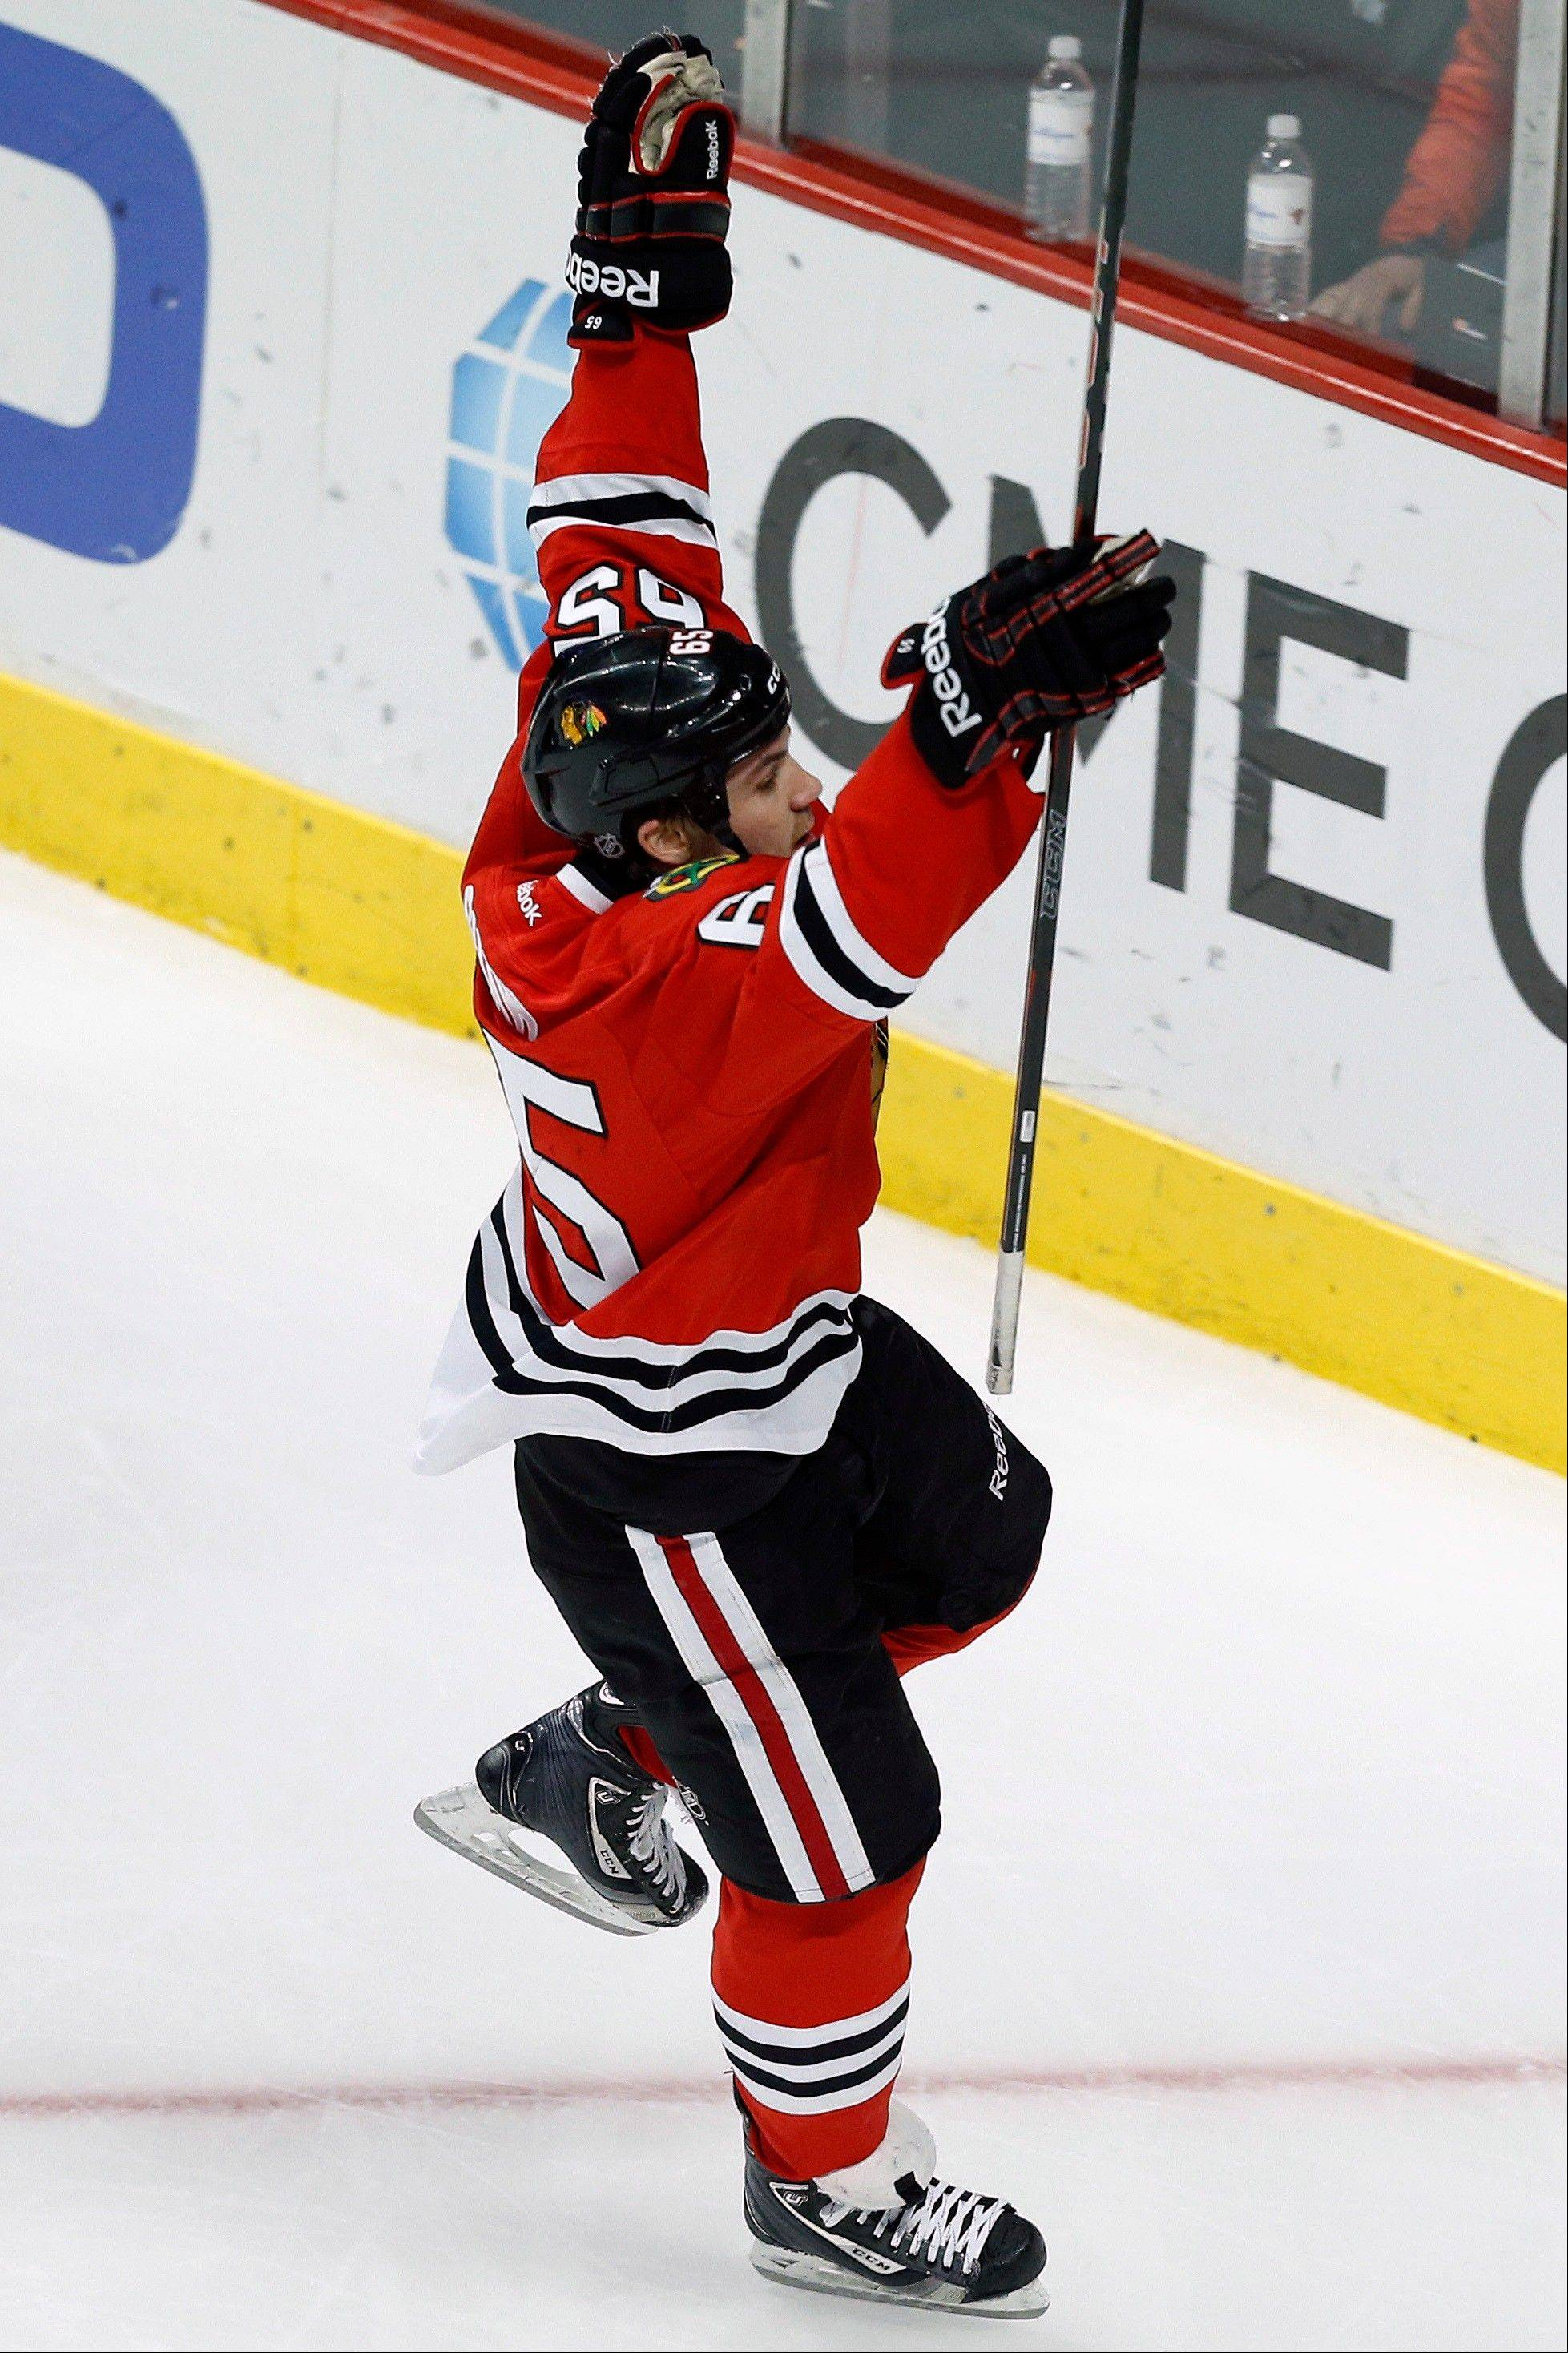 The Hawks' Andrew Shaw celebrates after beating Oilers goalie Devan Dubnyk in the second period Sunday at the United Center.